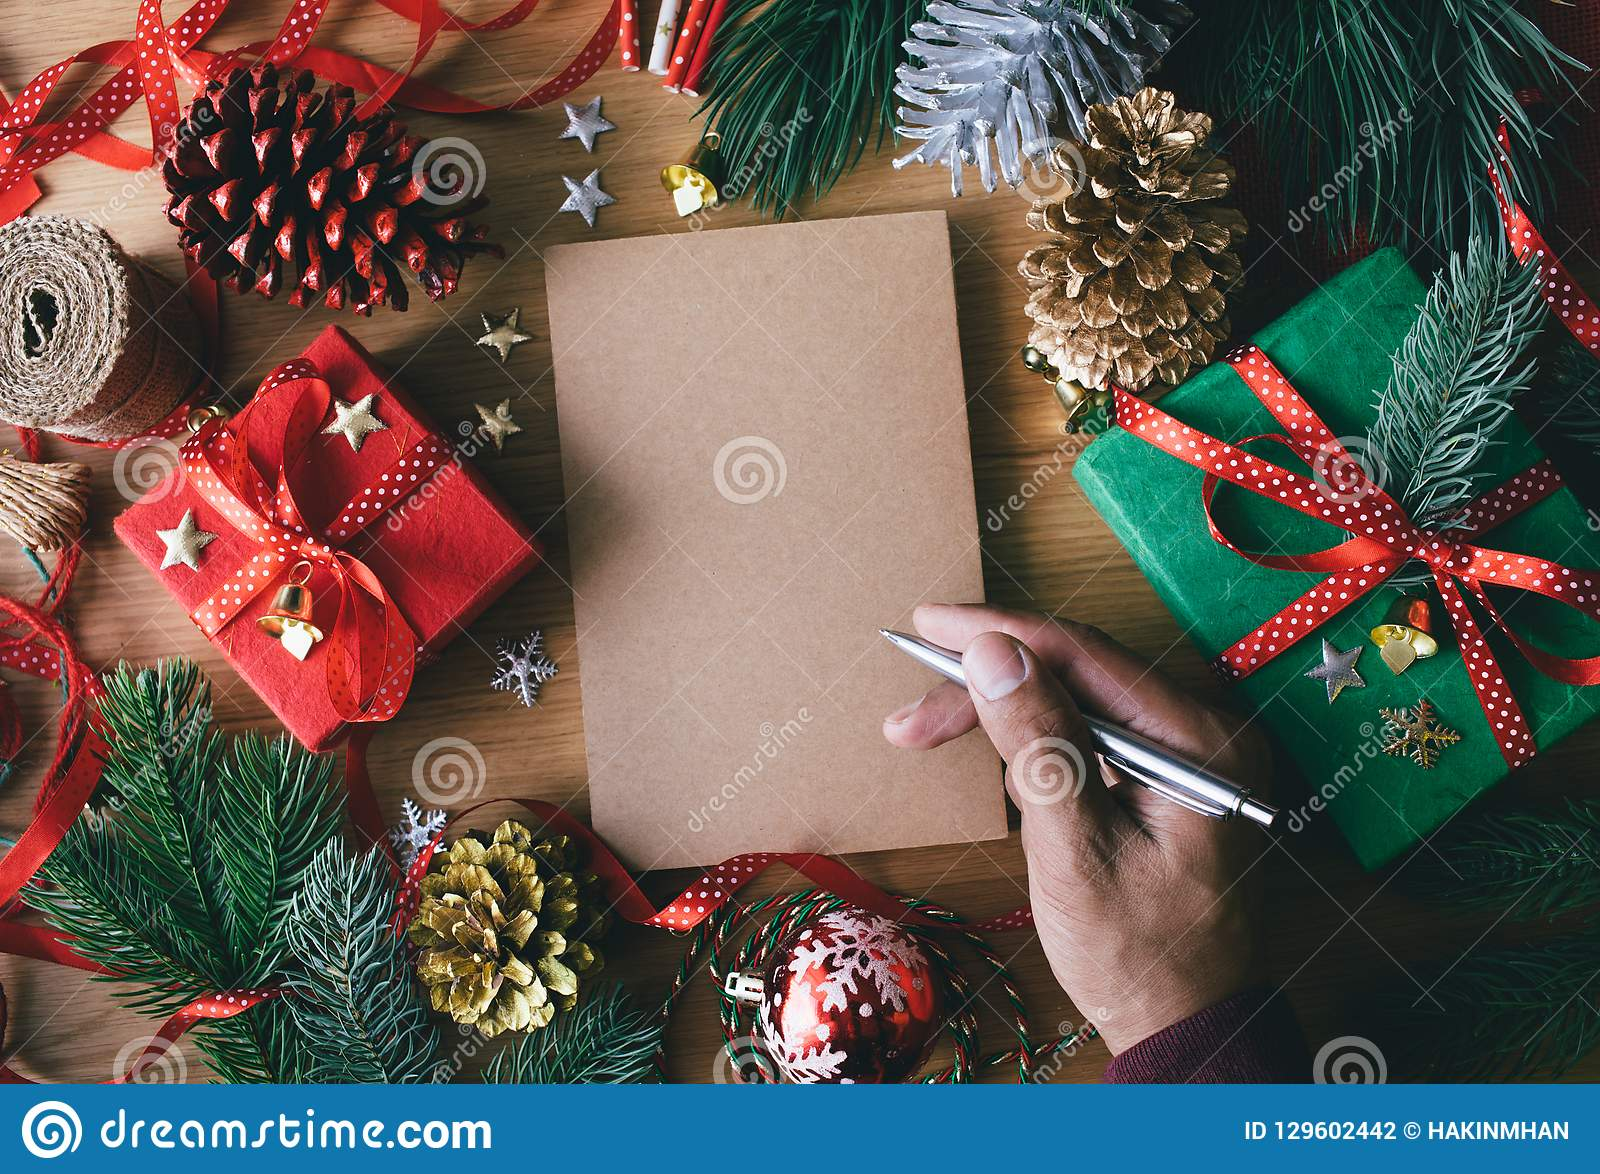 Merry Christmas Writing Ideas.Merry Christmas Concepts With Human Hand Writing Greeting